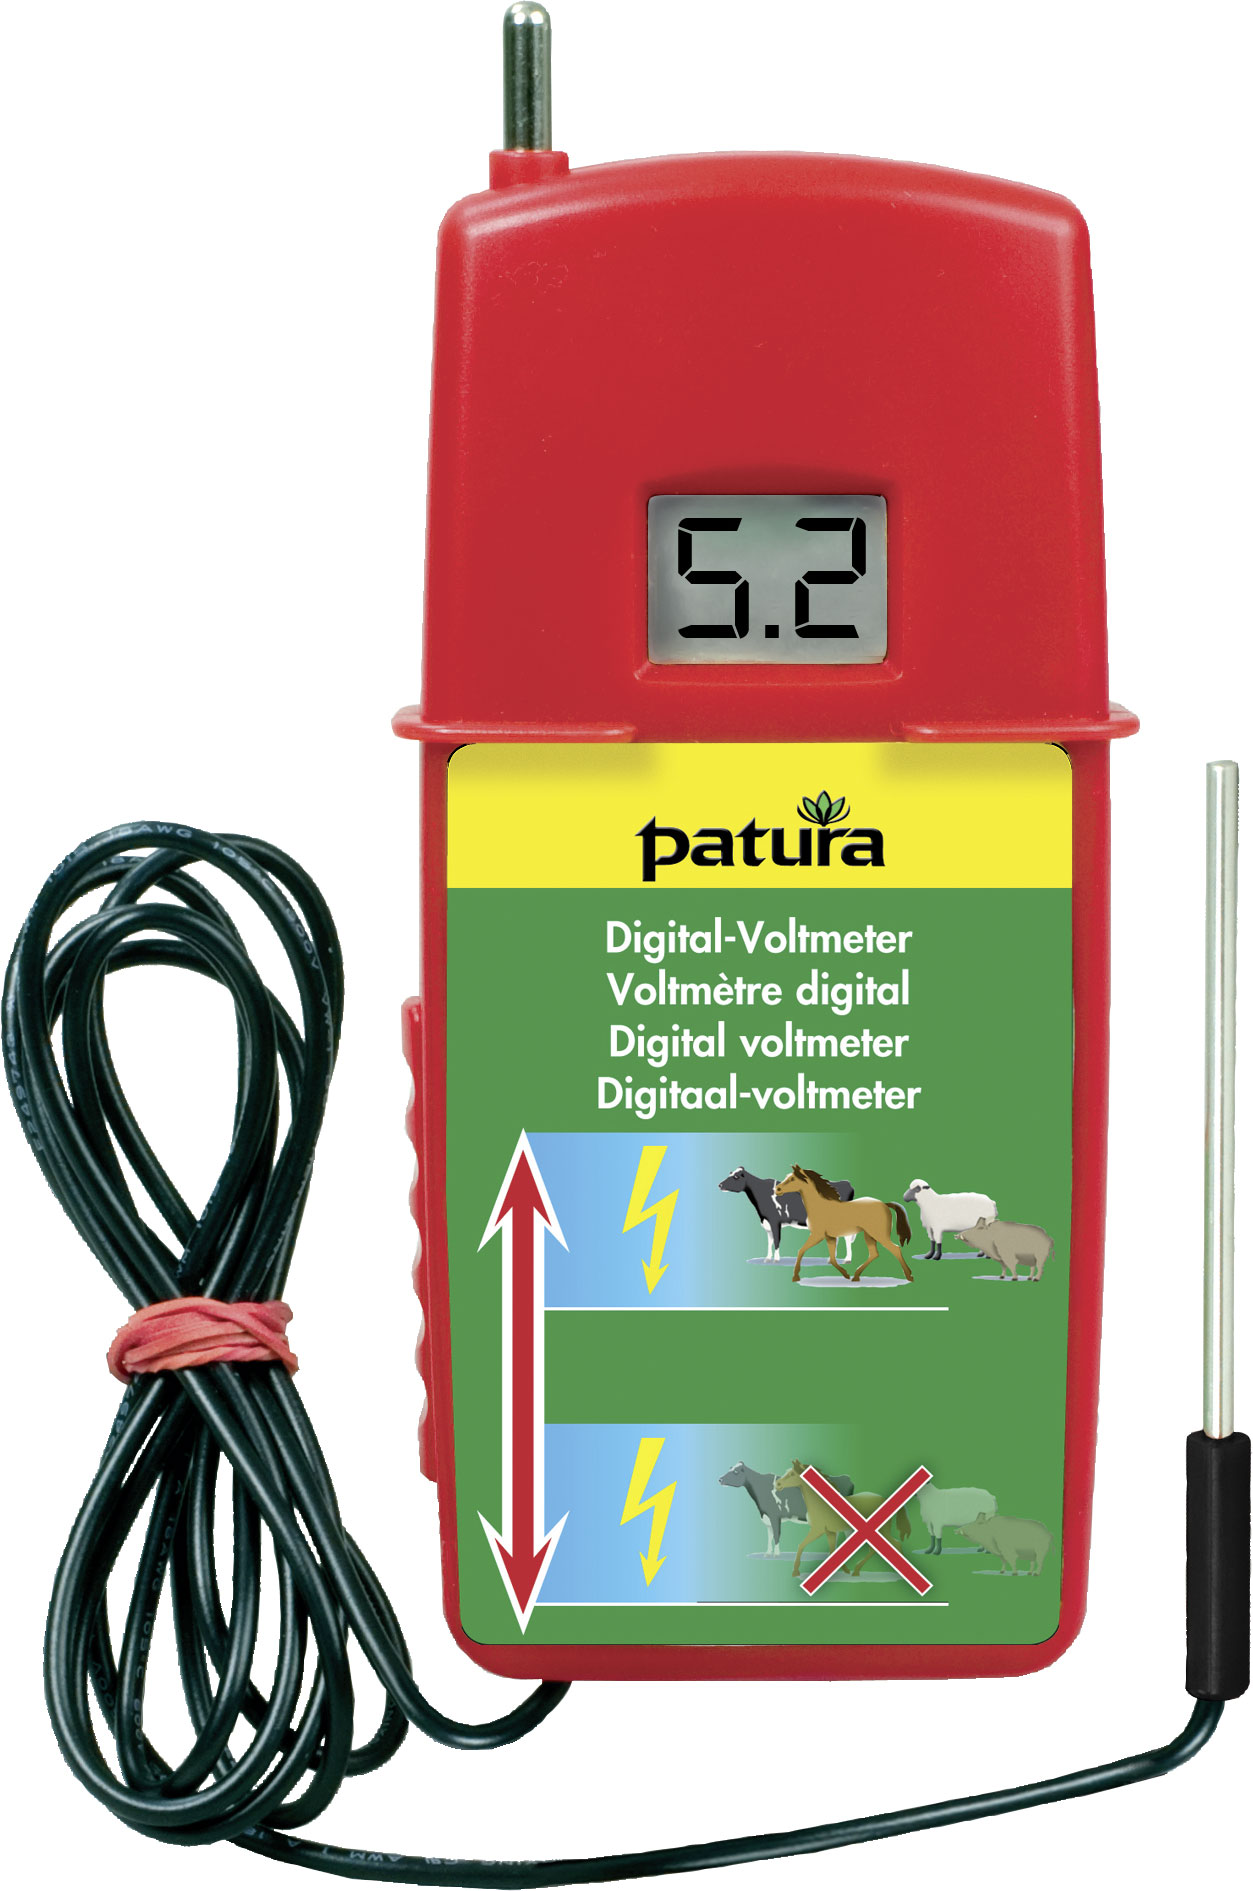 150302_DIGITAL-VOLTMETER_EUR09